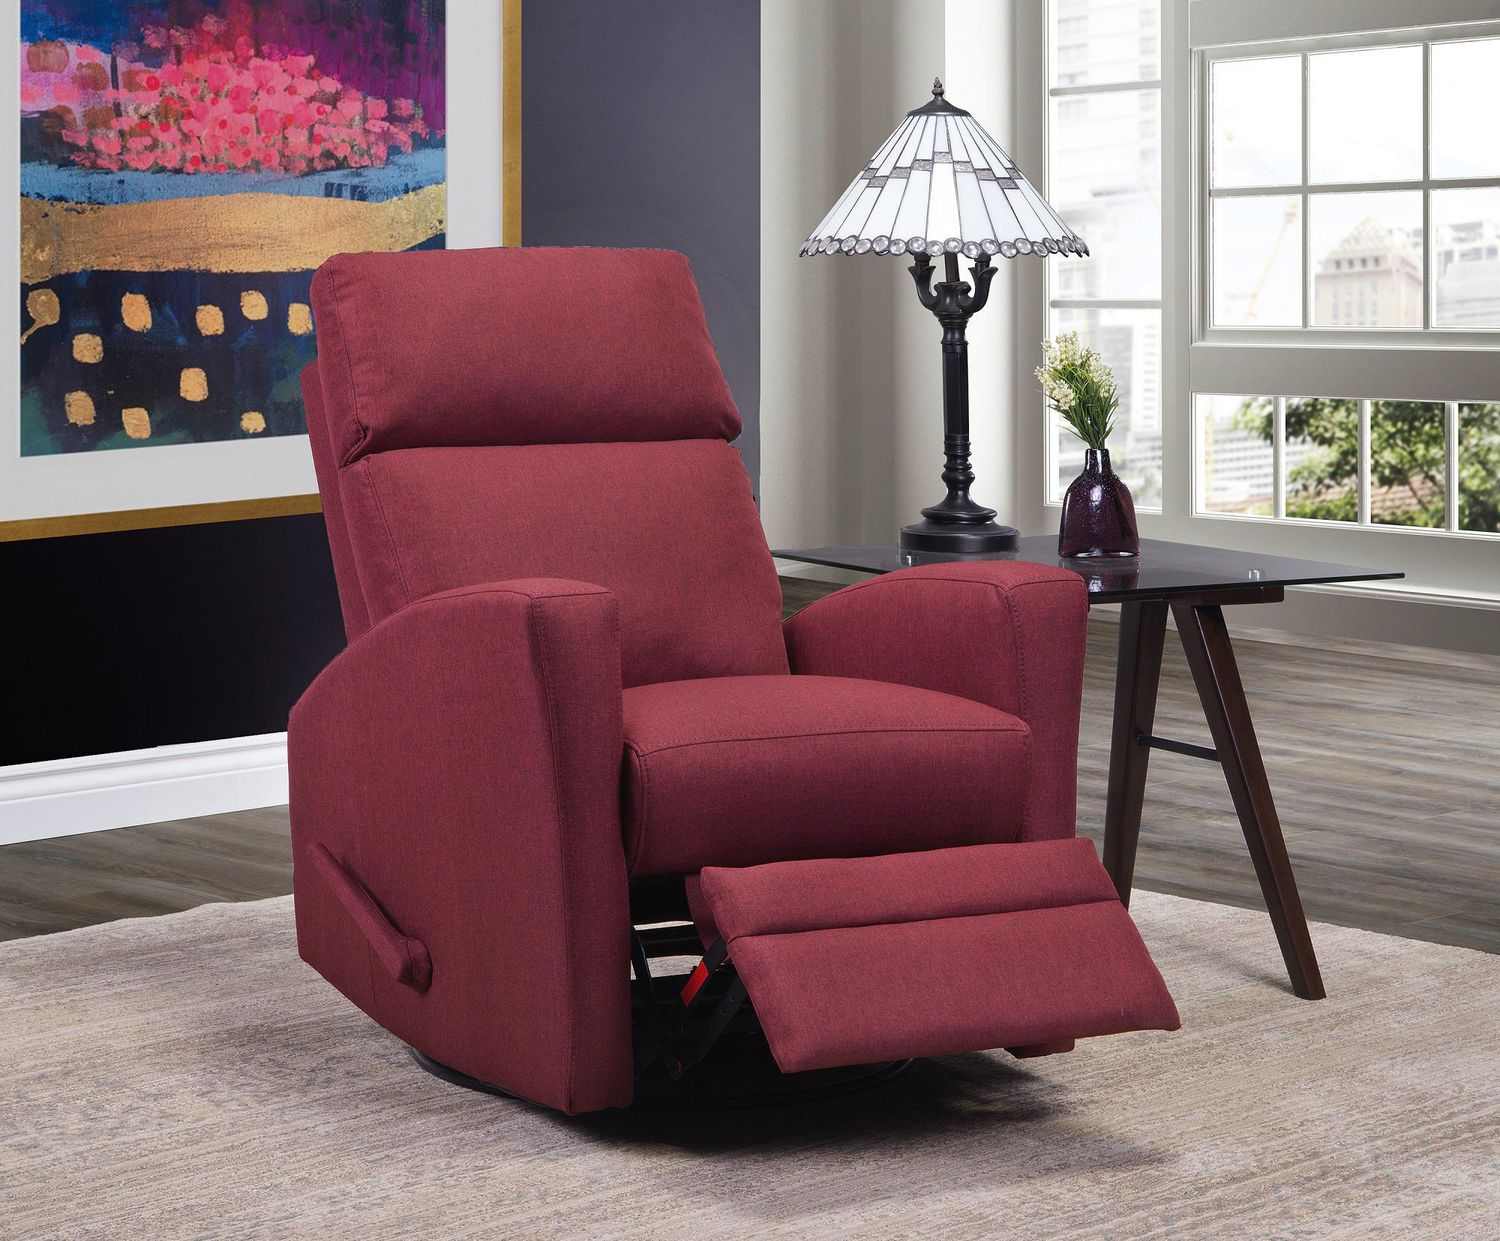 Fauteuil Pivotant Rouge Topline Home Furnishings Fauteuil Inclinable Pivotant Rouge